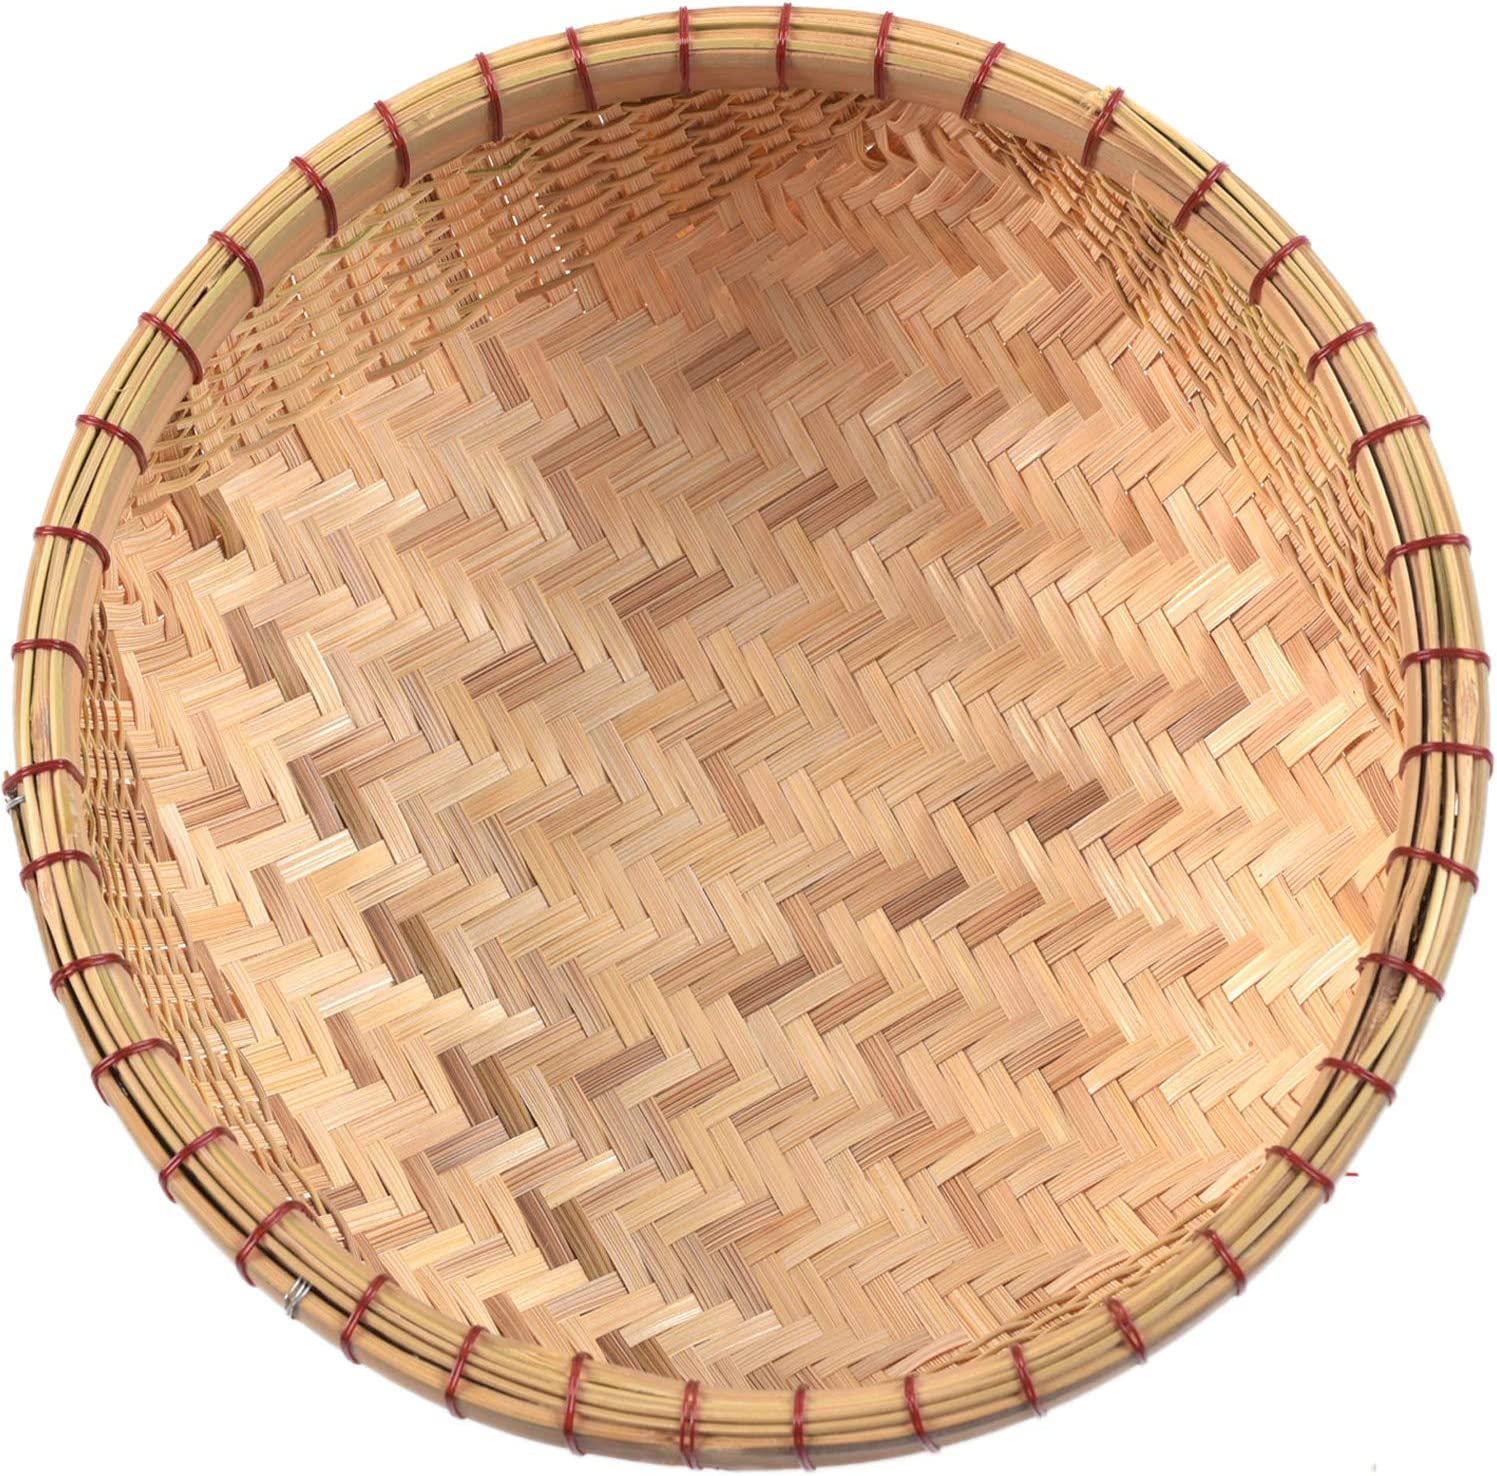 Used For Bread N //C Oval Bamboo Woven Basket Fruit And Vegetable Biscuits 3pcs Woven Fruit Storage Basket Tray